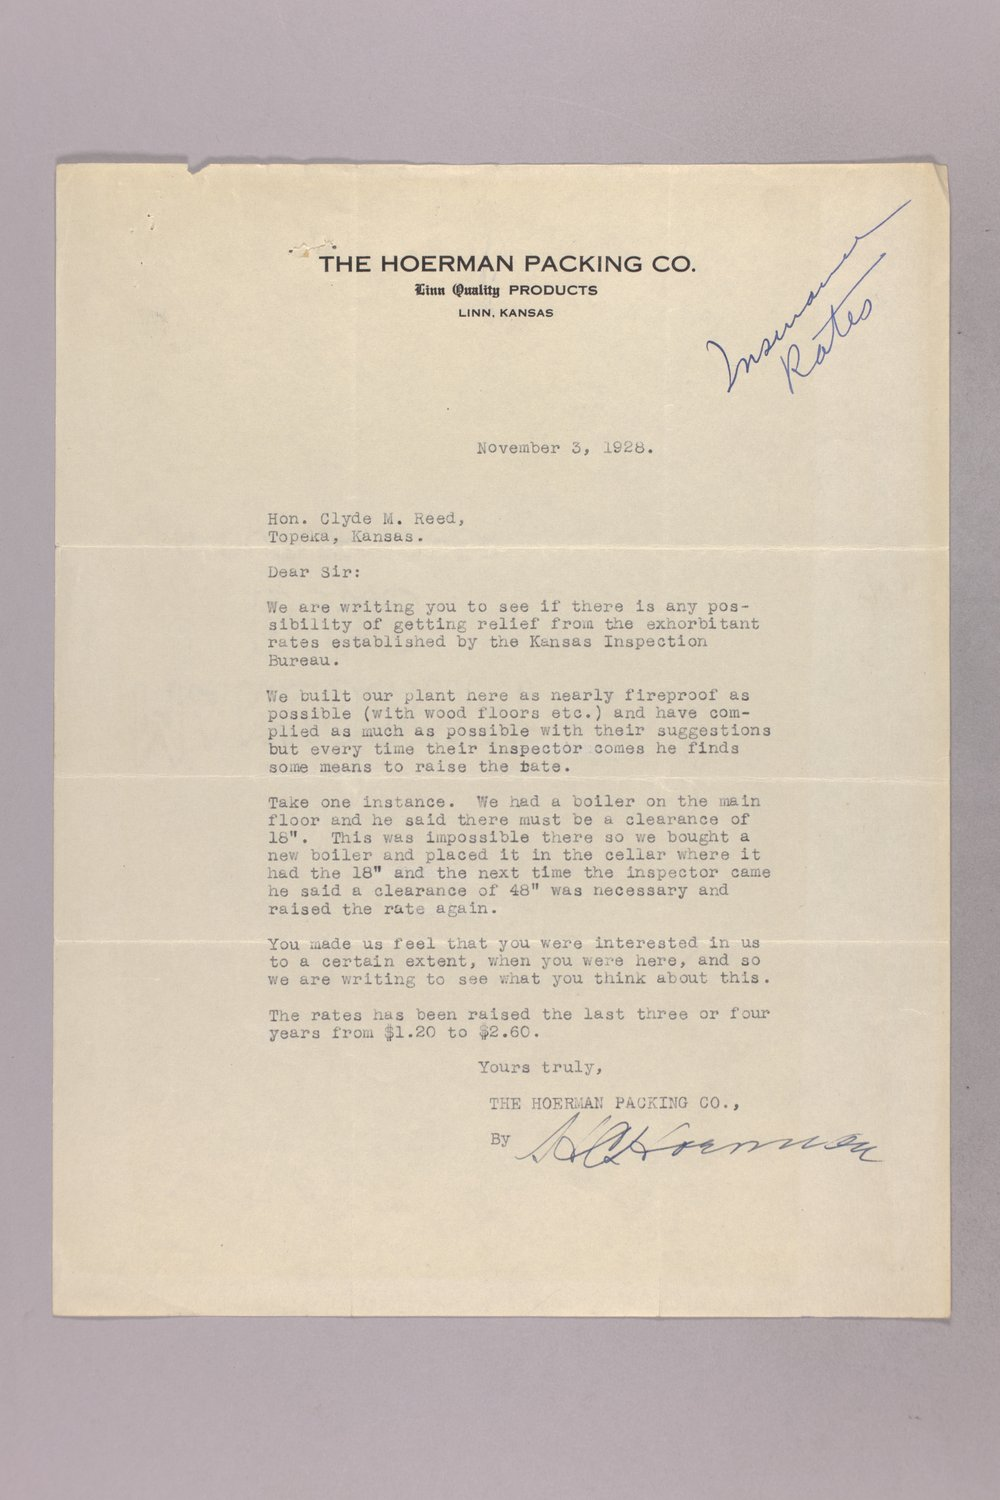 Governor Clyde M. Reed correspondence, insurance - 2